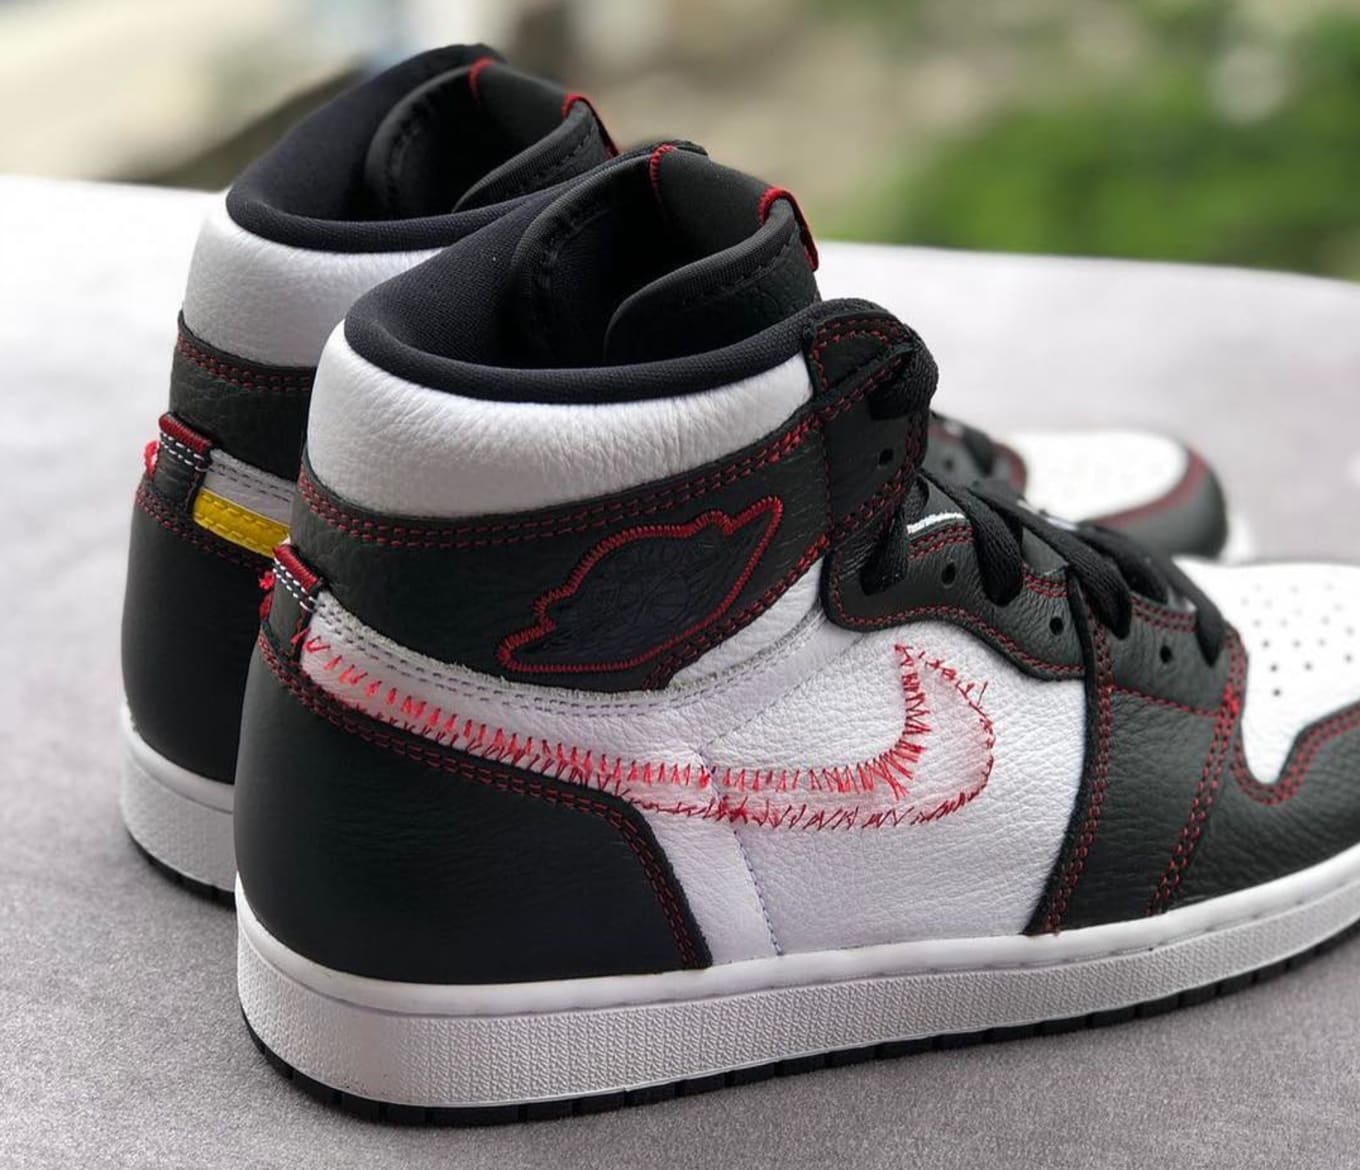 99677988fa68 Air Jordan 1 Retro High OG White Black-Dynamic Yellow-University Red ...